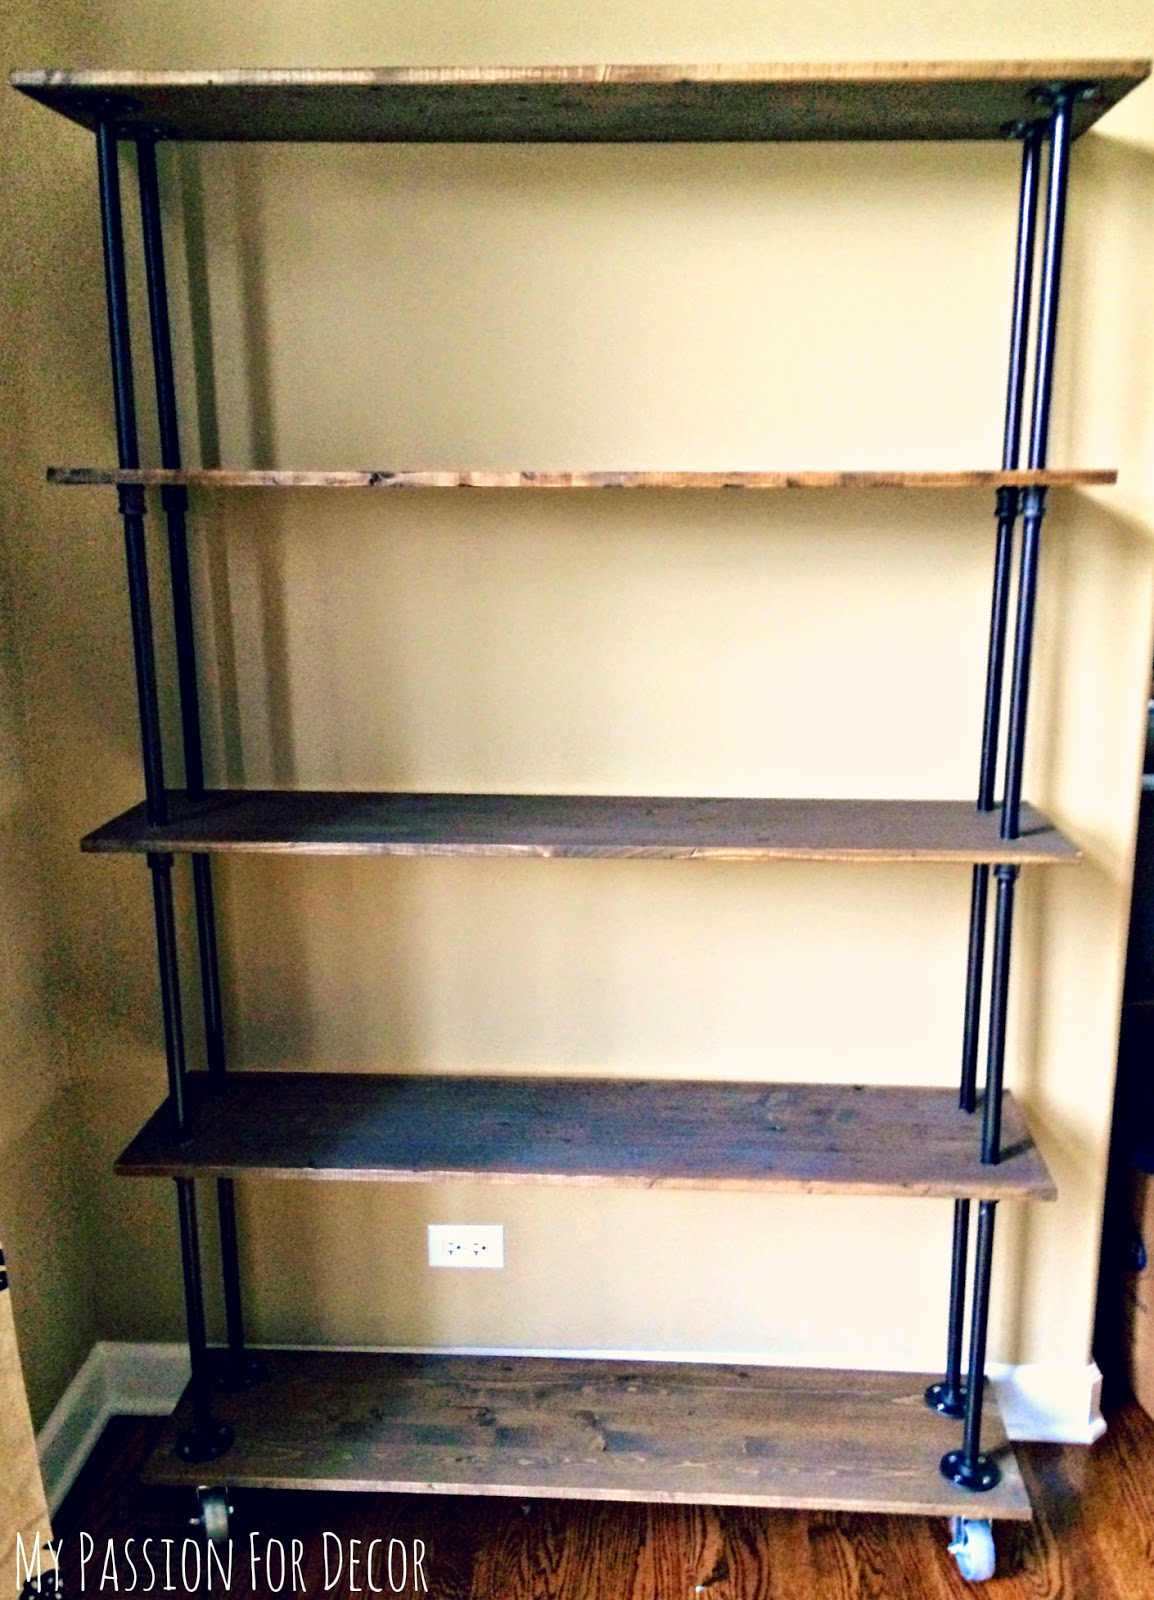 My Passion For Decor: DIY Industrial Pipe and Wood Shelving